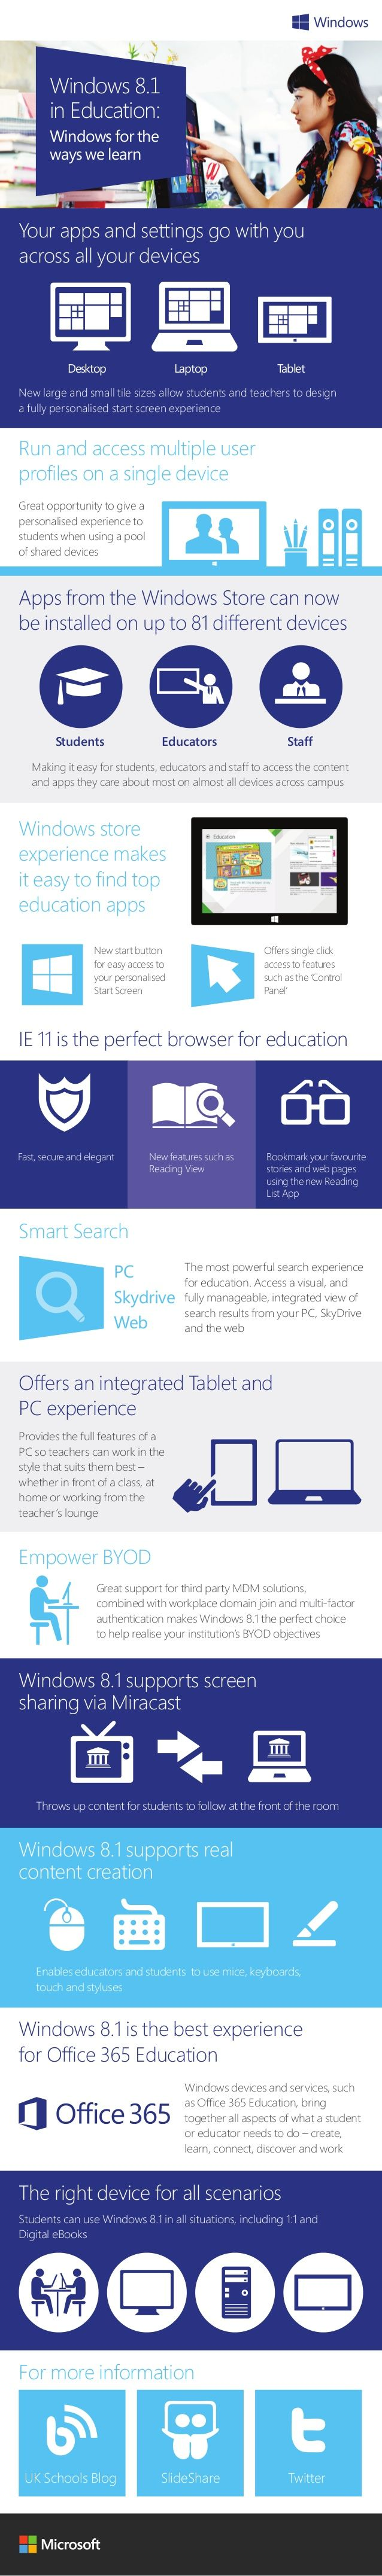 Windows 8.1 in Education: Windows for the ways we learn (Infographic)